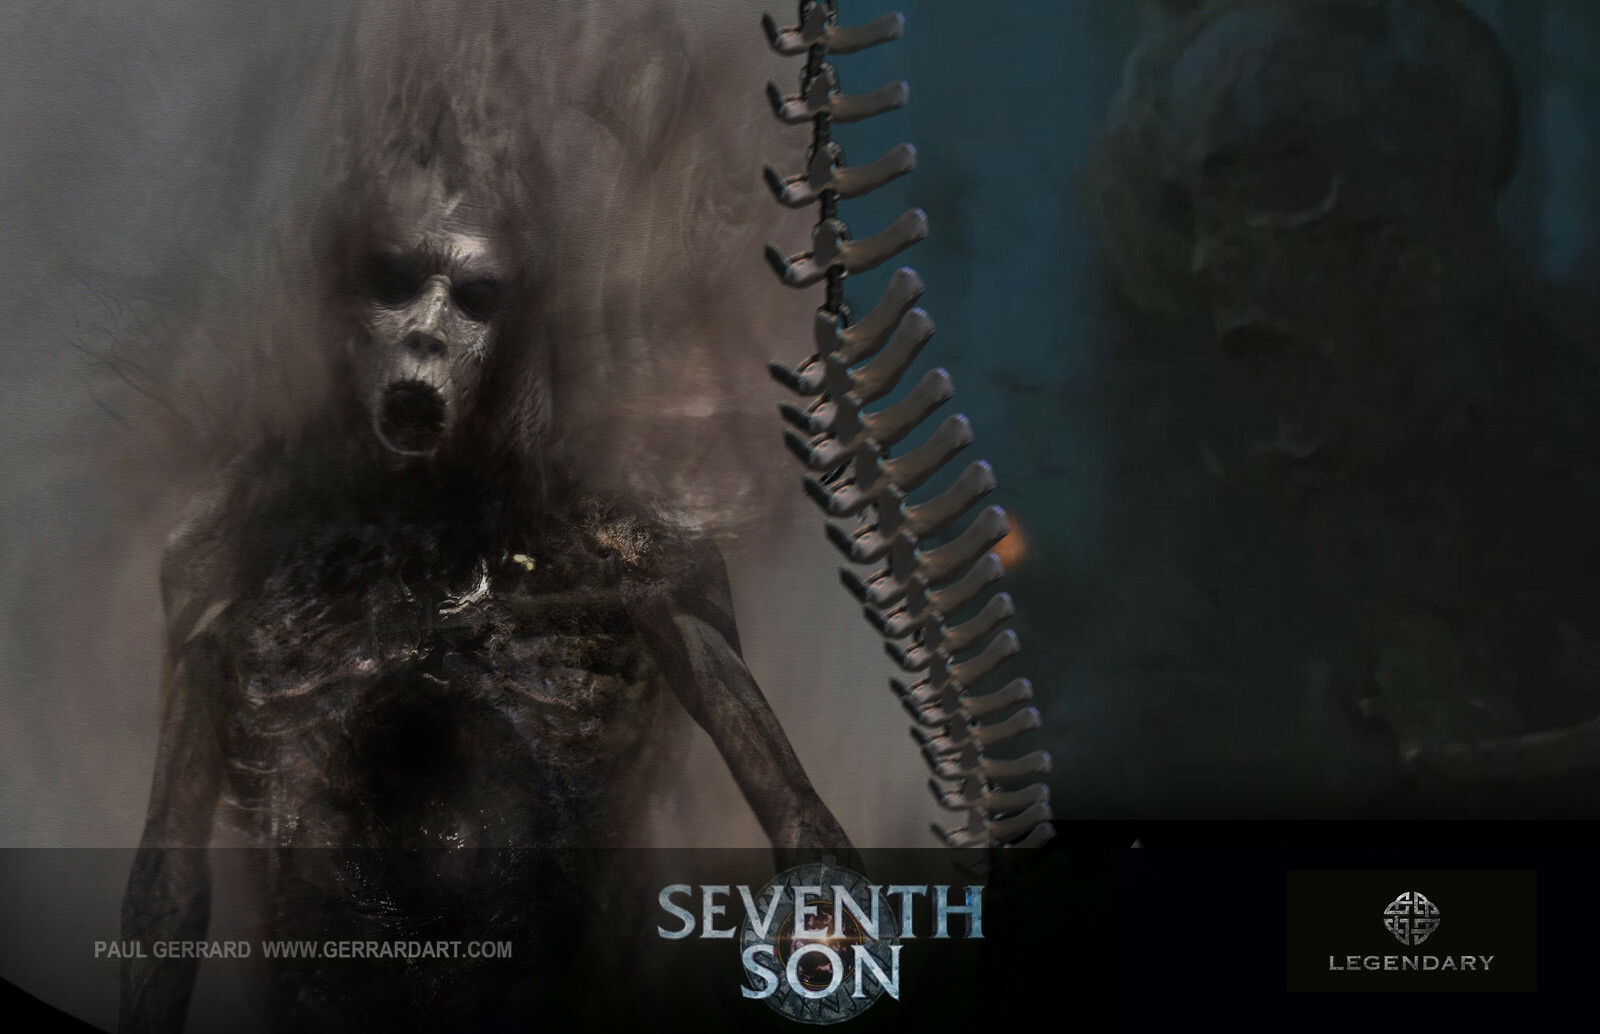 Ghost from Seventh Son